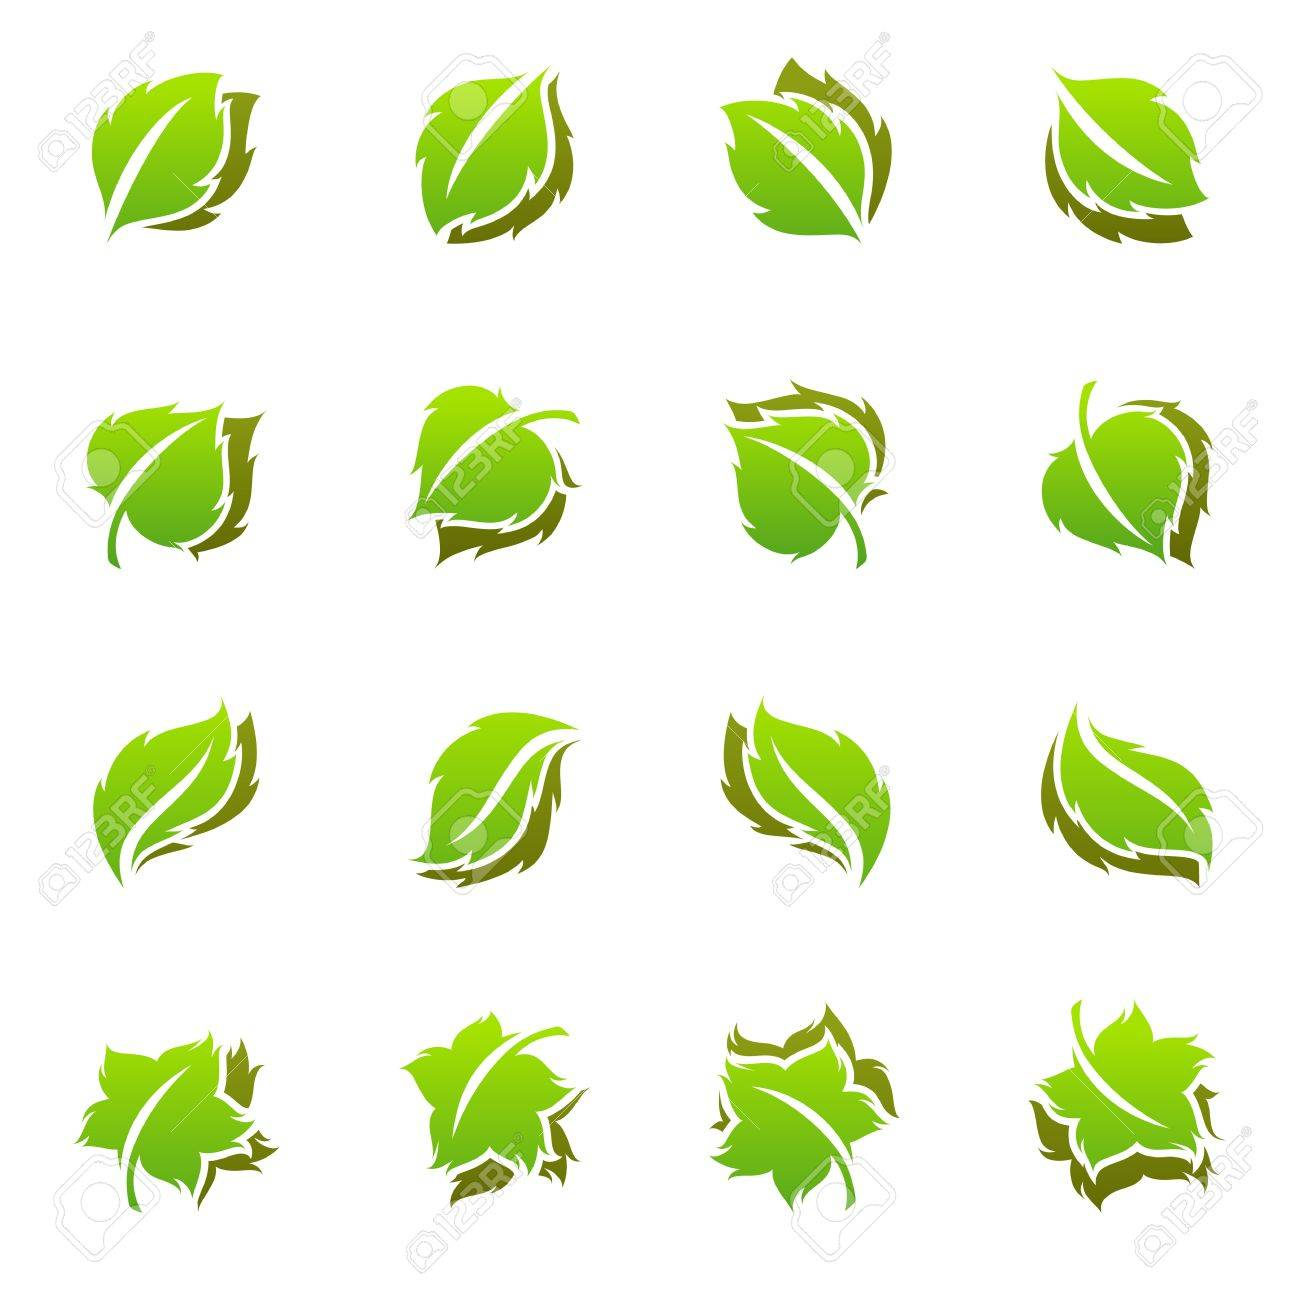 leaves vector logo template set elements for design icon set rh 123rf com vector leaves png vector leaves free